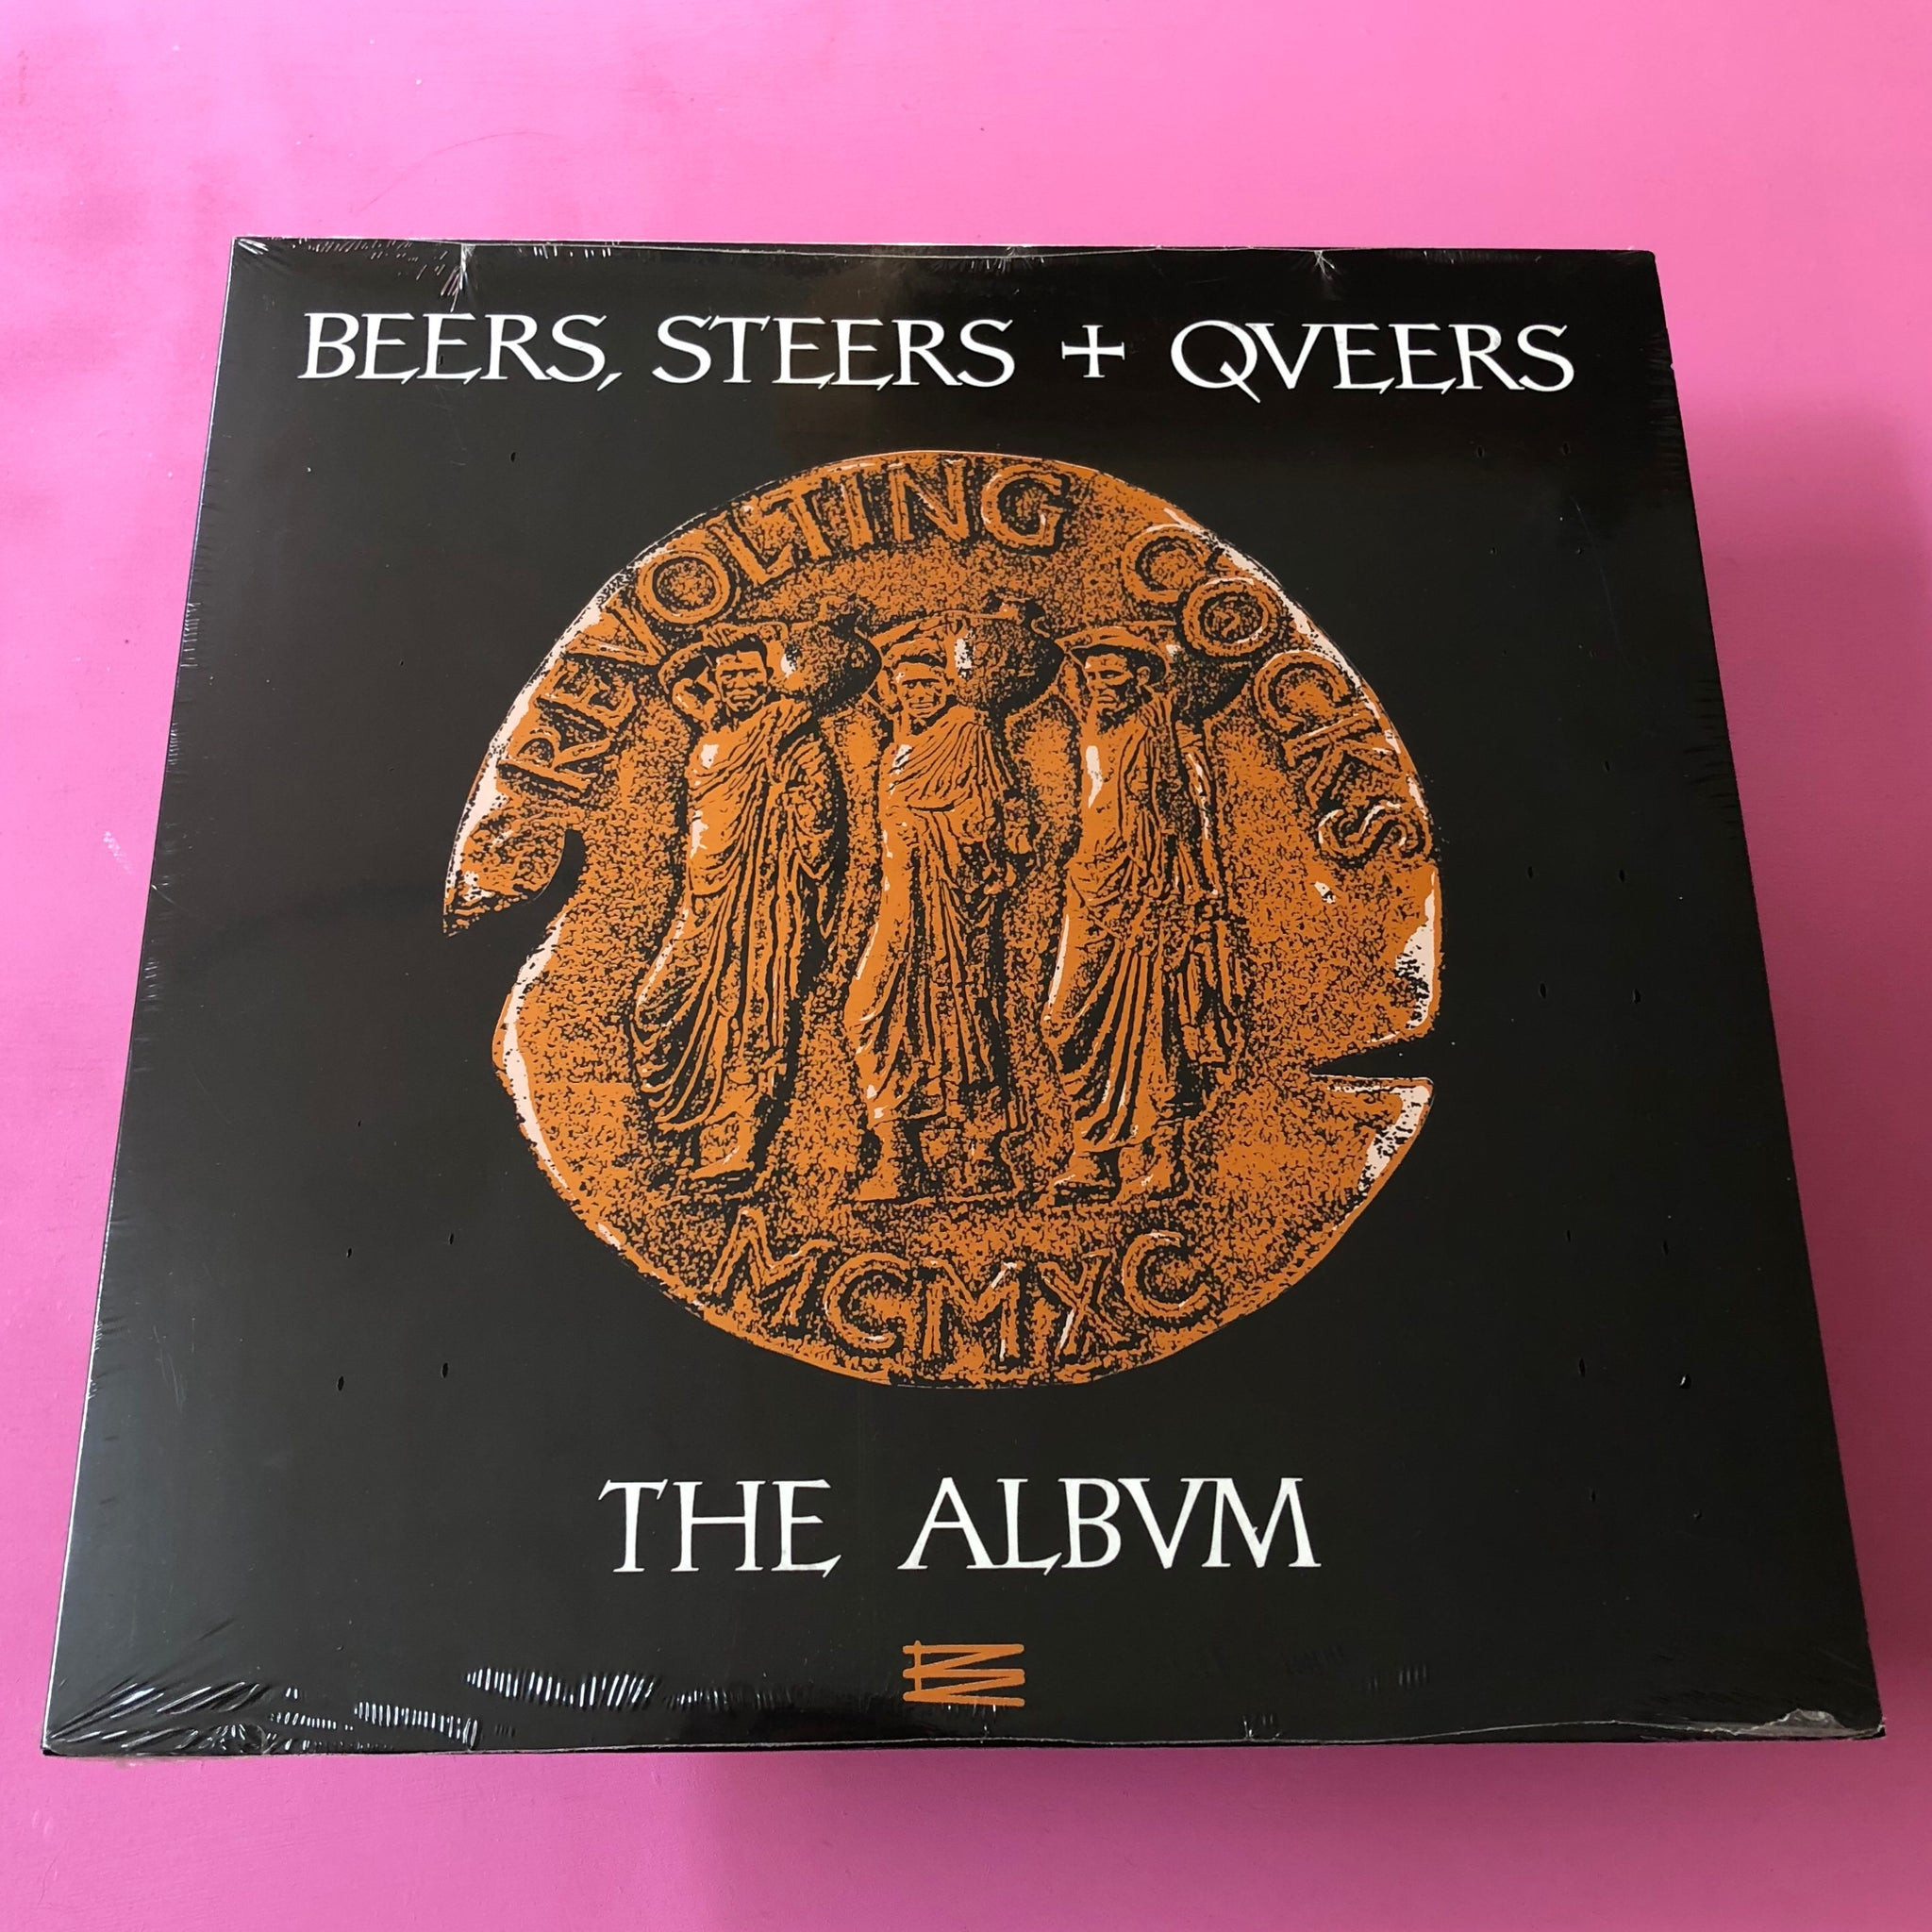 Revolting Cocks - Beers, Steers + Qveers The Albvm LP (Cleopatra, 2014)